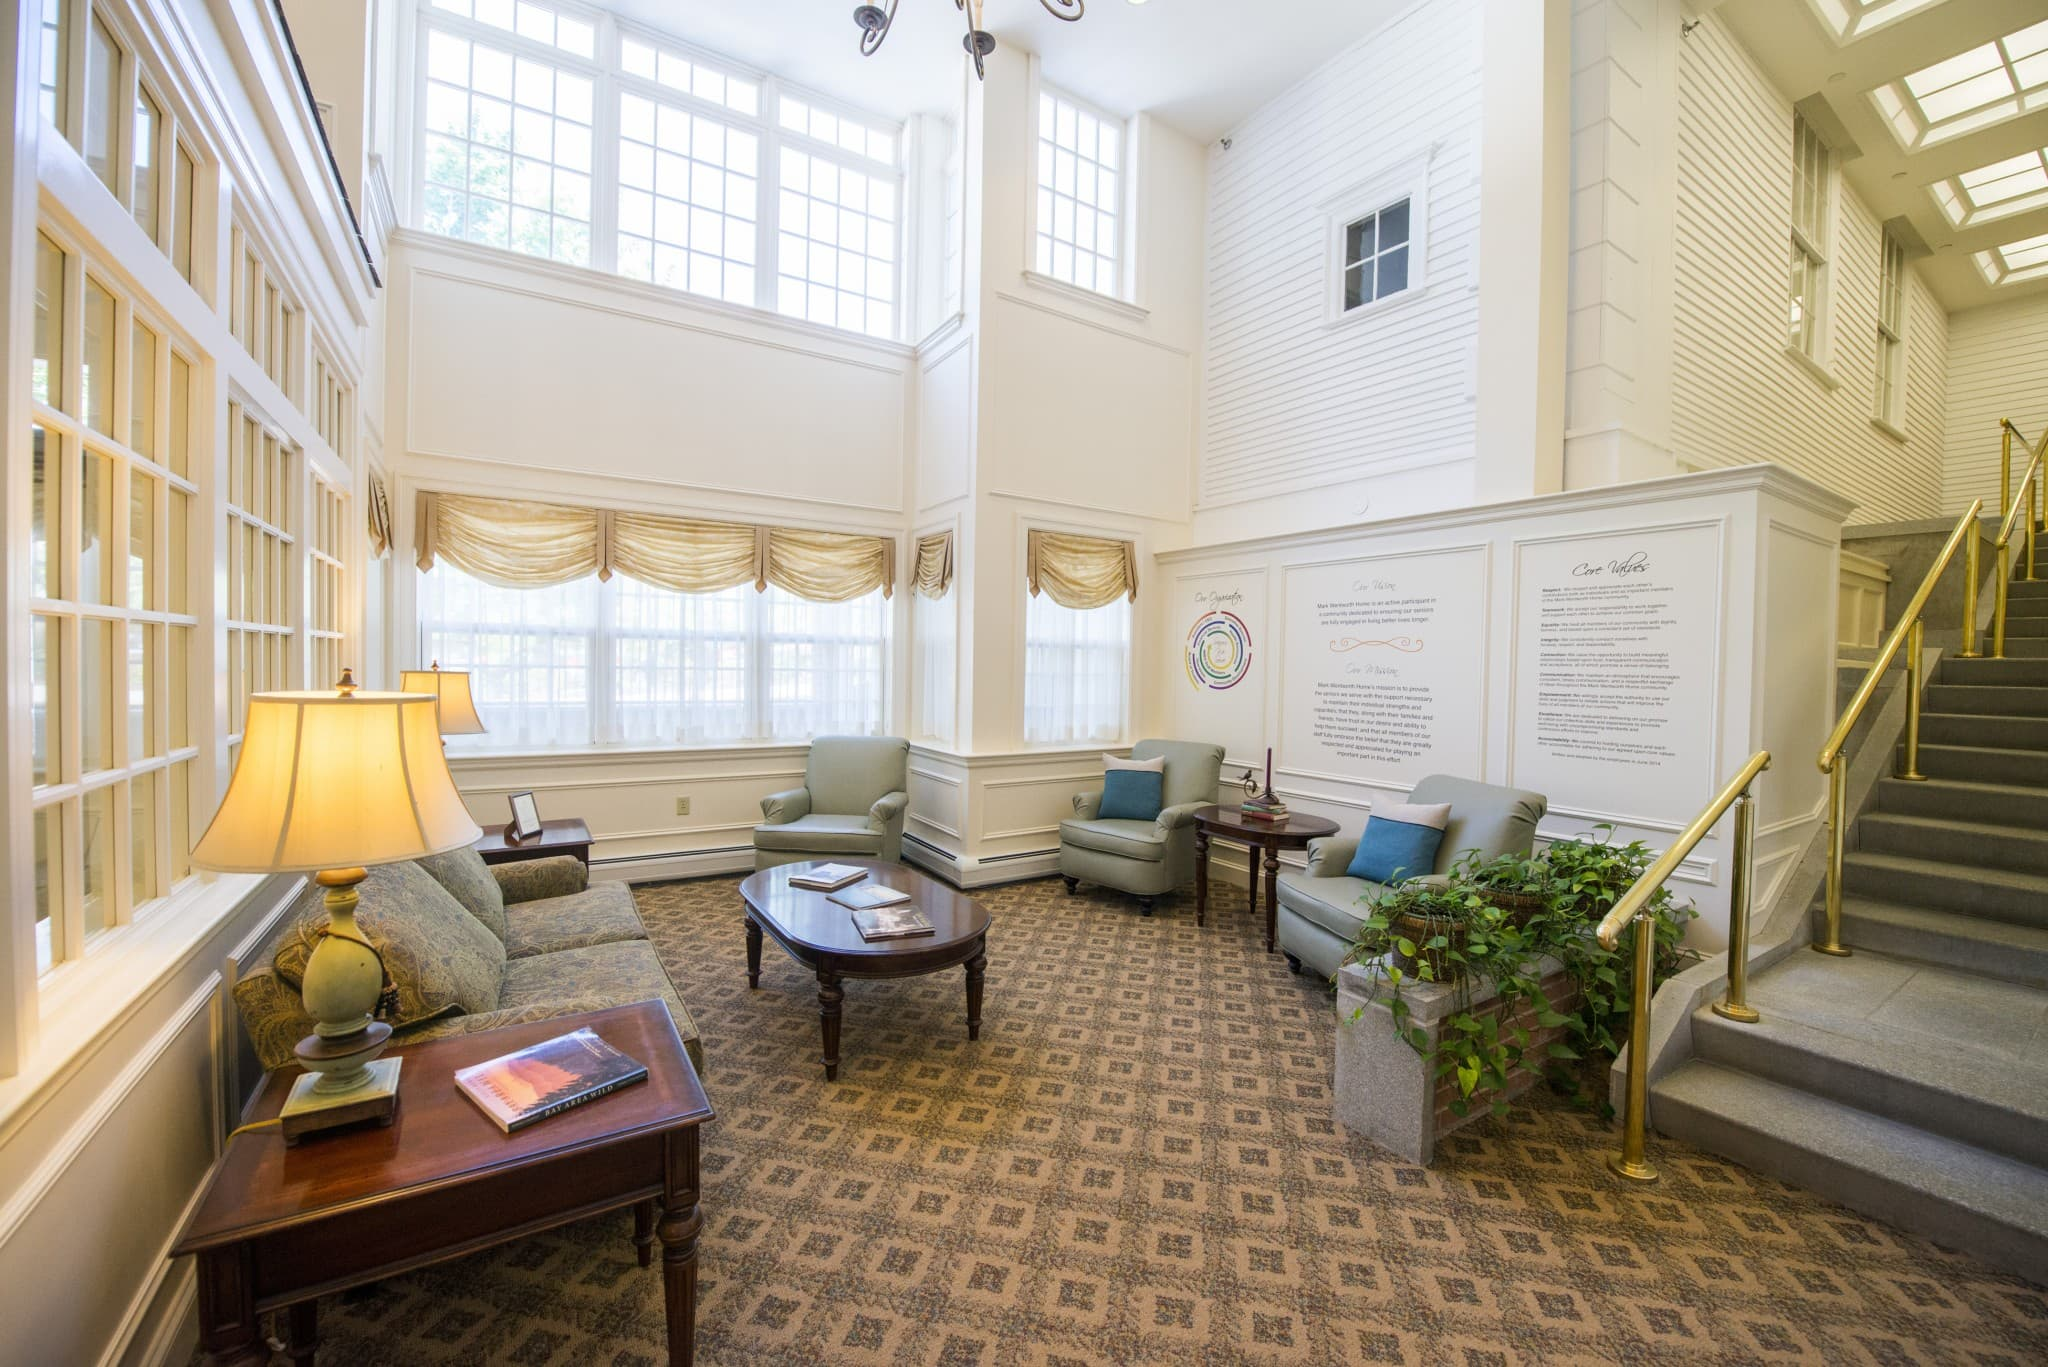 Family and visitors can enjoy our lovely and comfortable waiting area